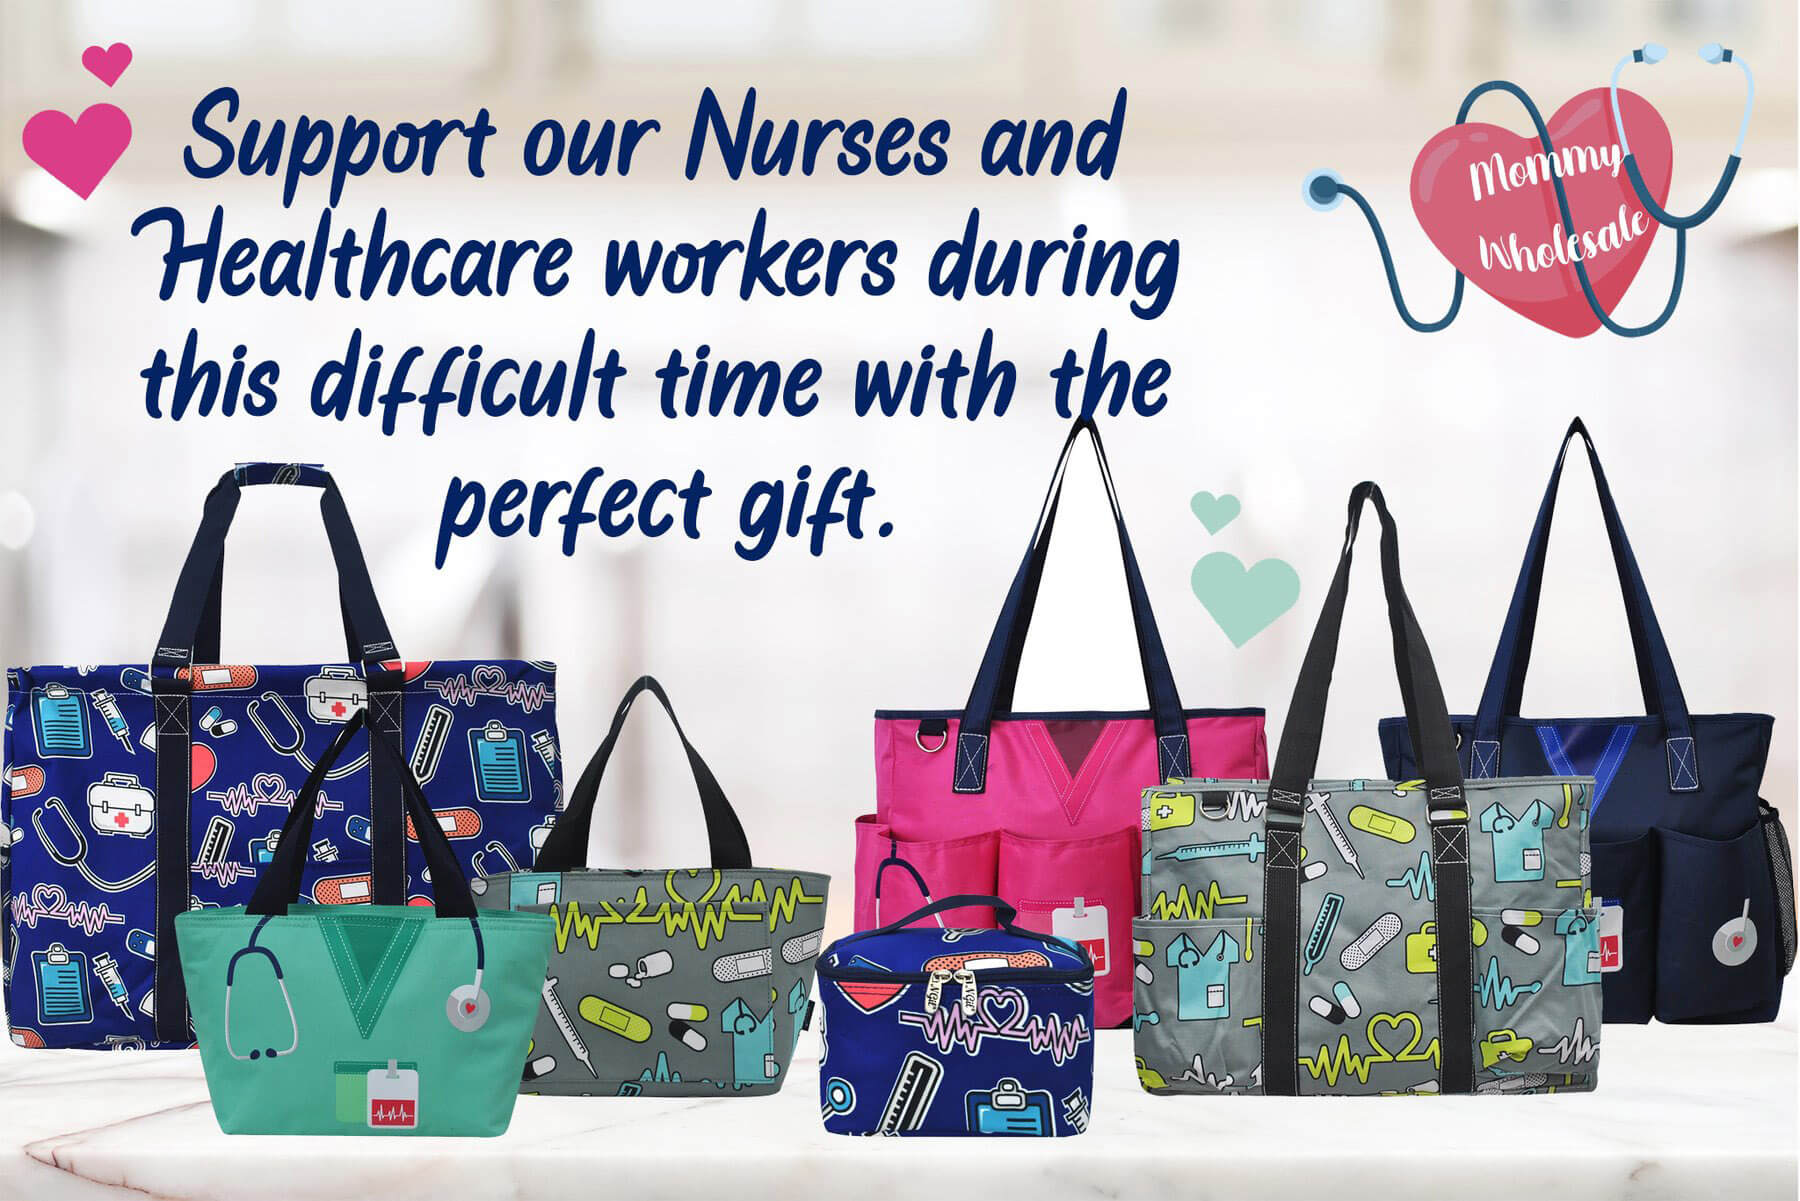 Perfect Gifts for Nurses, Nurse Tote Bags, Wholesale Nurse Totes, Perfect gifts for healthcare workers, Gifts for essential workers, Nurse Thank You Gifts, Hospital Gift Shop, Nurse Lunch Bags, Cheap Nurse Merch, Wholesale Nurse Uniform, Nurse Supplies